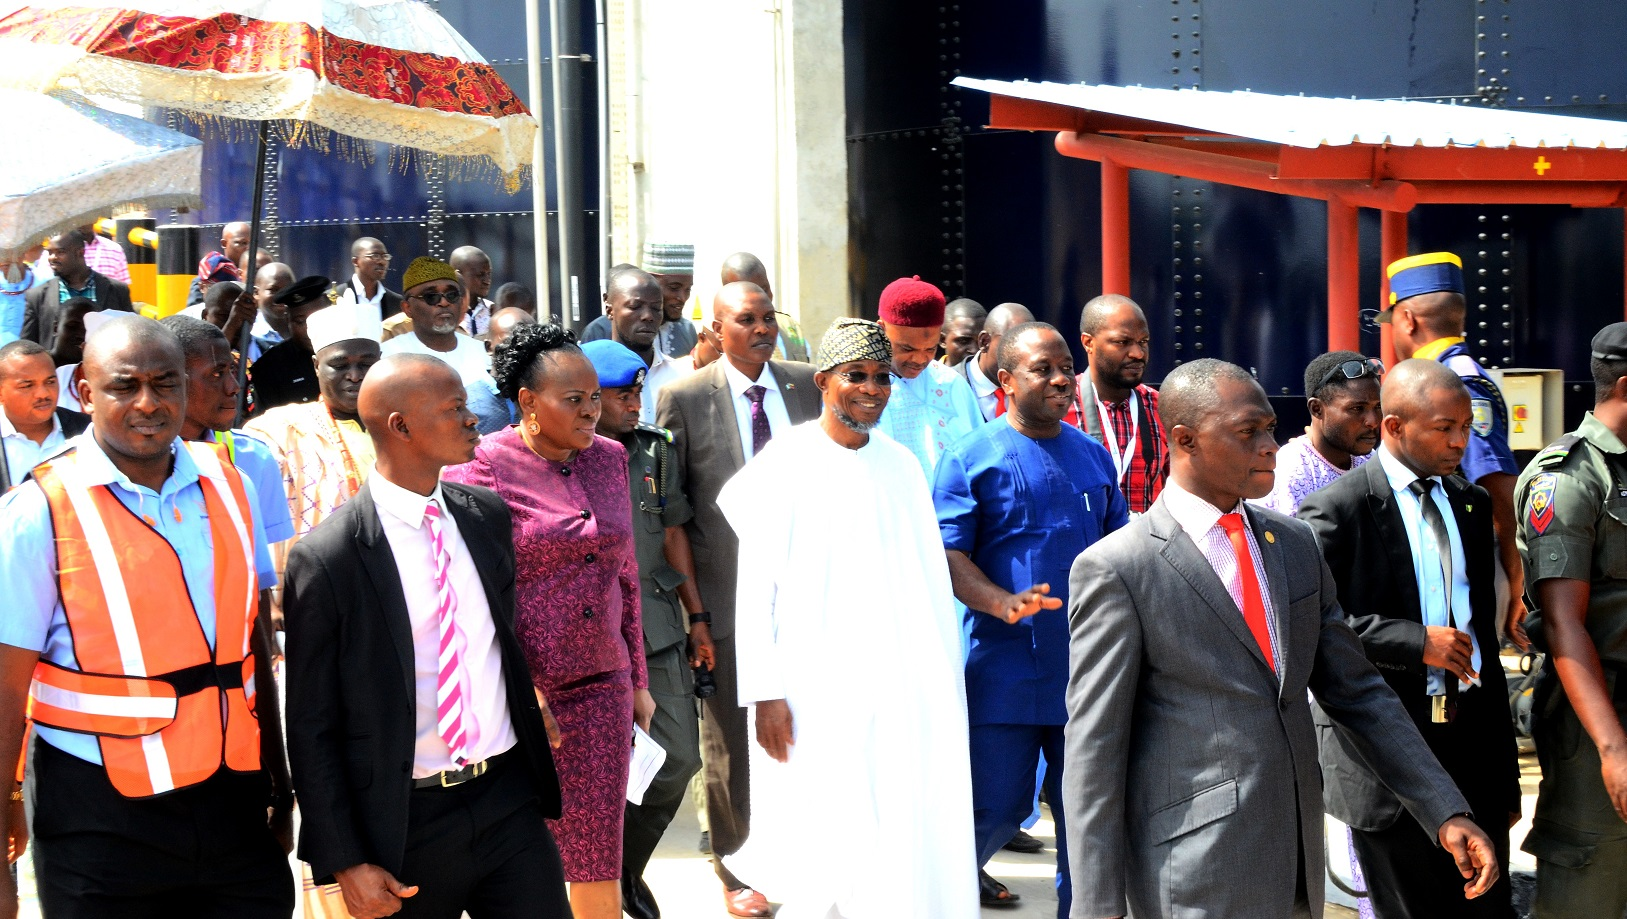 Governor State of Osun, Ogbeni Rauf Aregbesola (middle); Chairman International Breweries Plc Ilesa, Otunba Micheal Daramola (right), Corporate Affair Manager,  Mrs. Folasade Omole (3rd left), and others during the Official Commissioning of the New Effluent Treatment Plant and Inspection of Expansion Project at International Breweries Plc, Ilesa on Tuesday 8/12/2015.